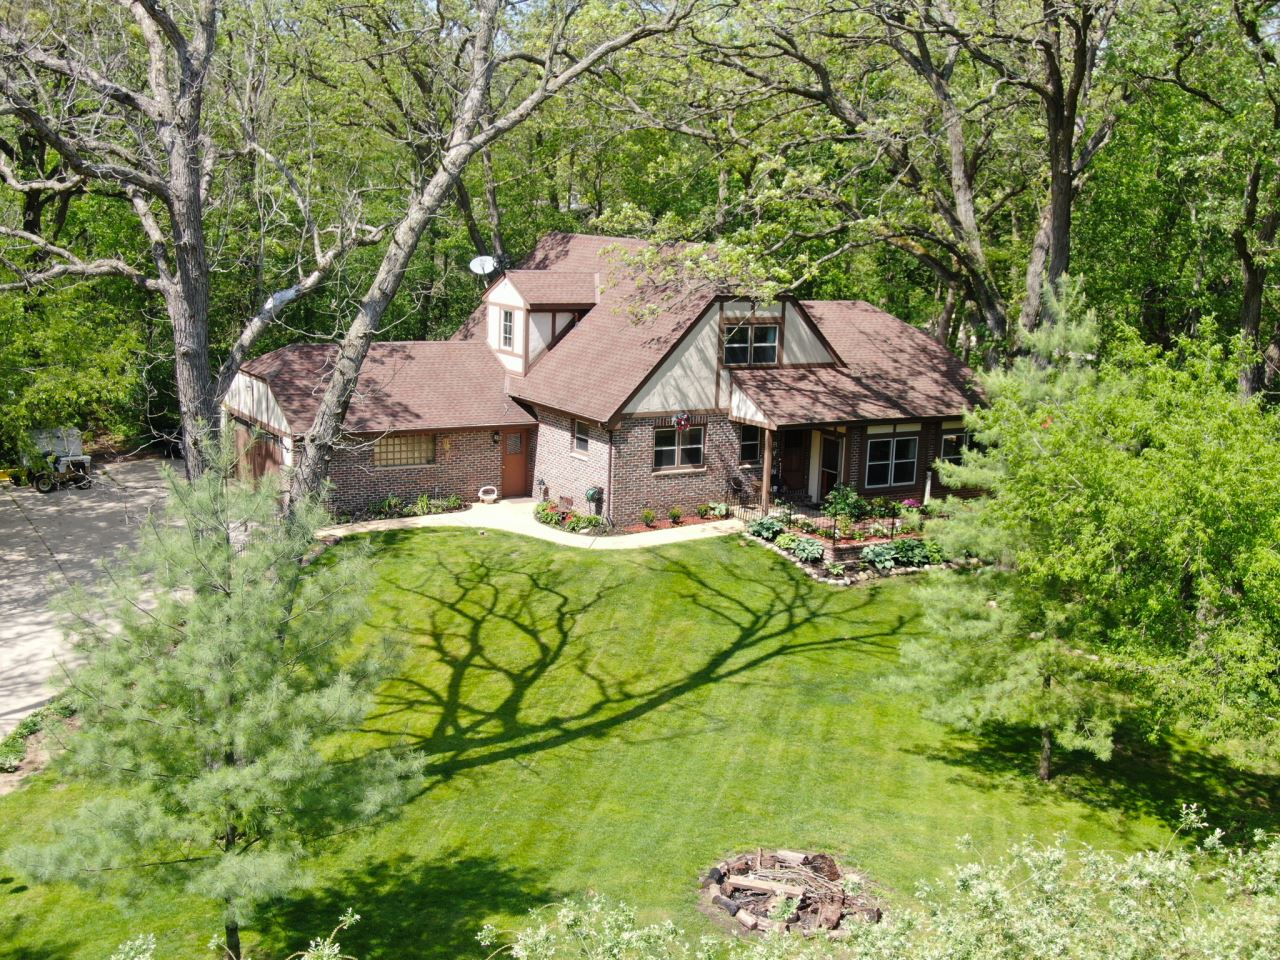 363 Evelyn Ave, Delafield, WI 53018 - #: 1690592